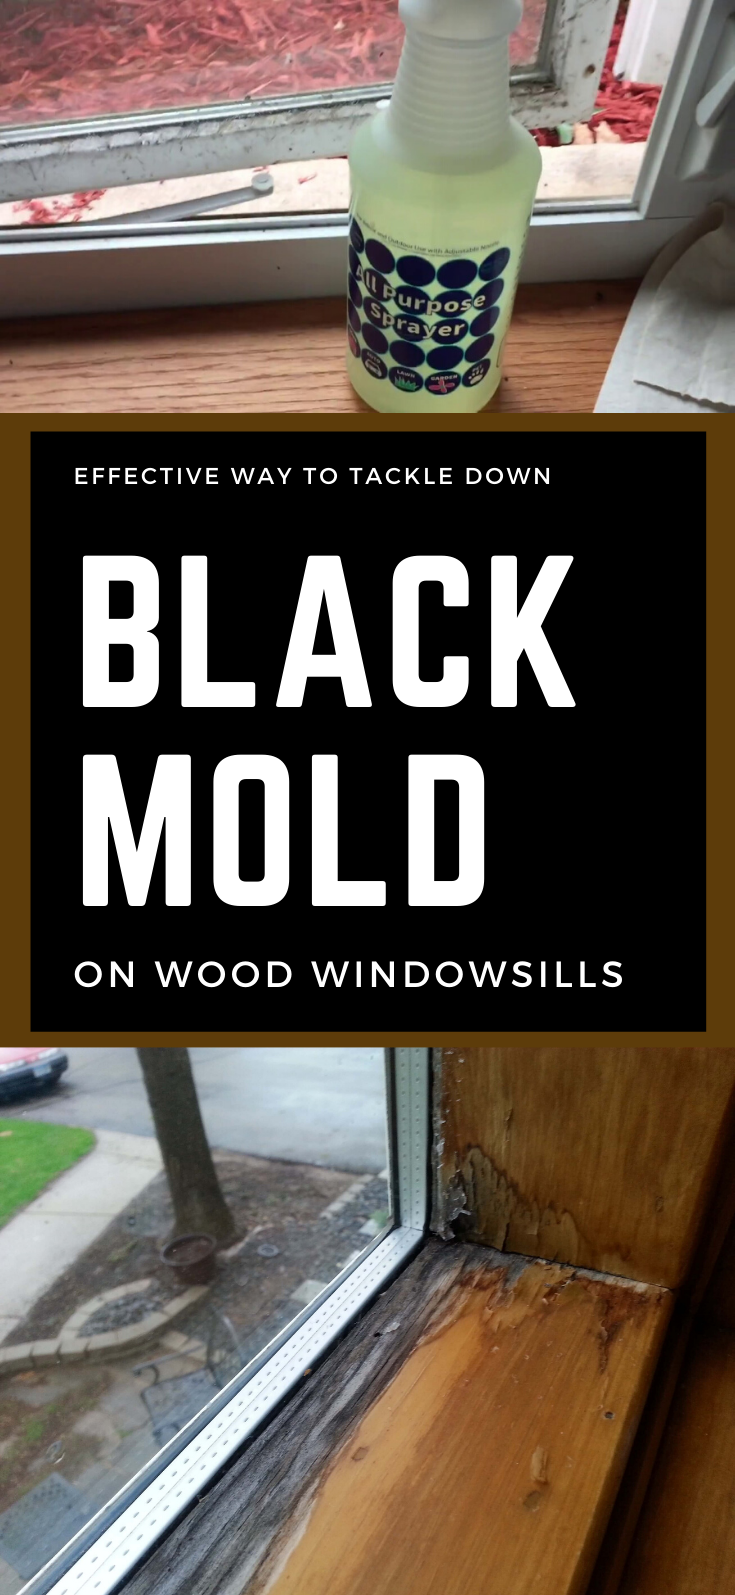 Effective Way To Tackle Down Black Mold On Wood Windowsills In 2020 Cleaning Mold Cleaning Wood Window Sill